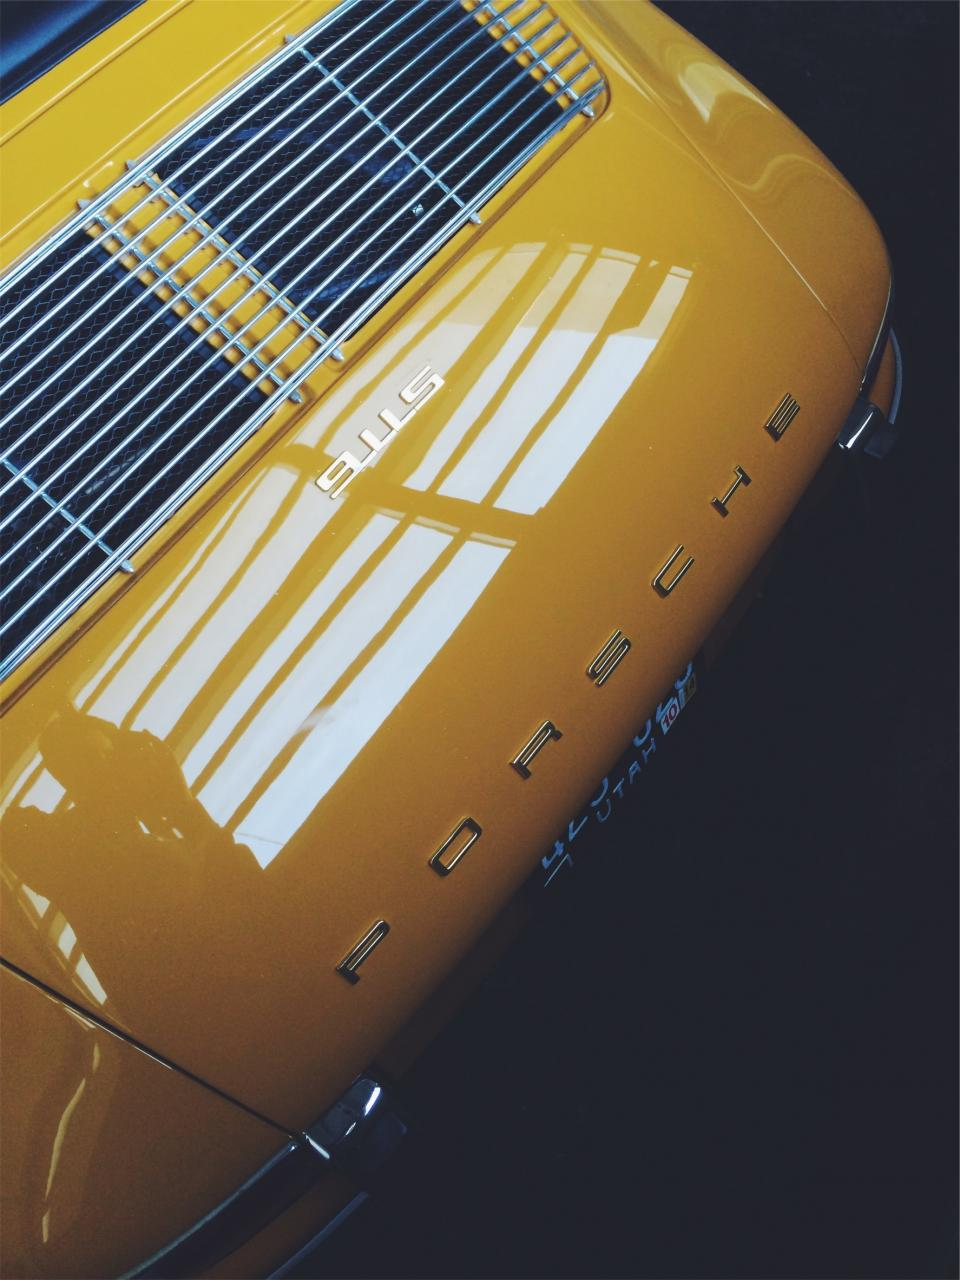 Free stock photo of yellow Porsche